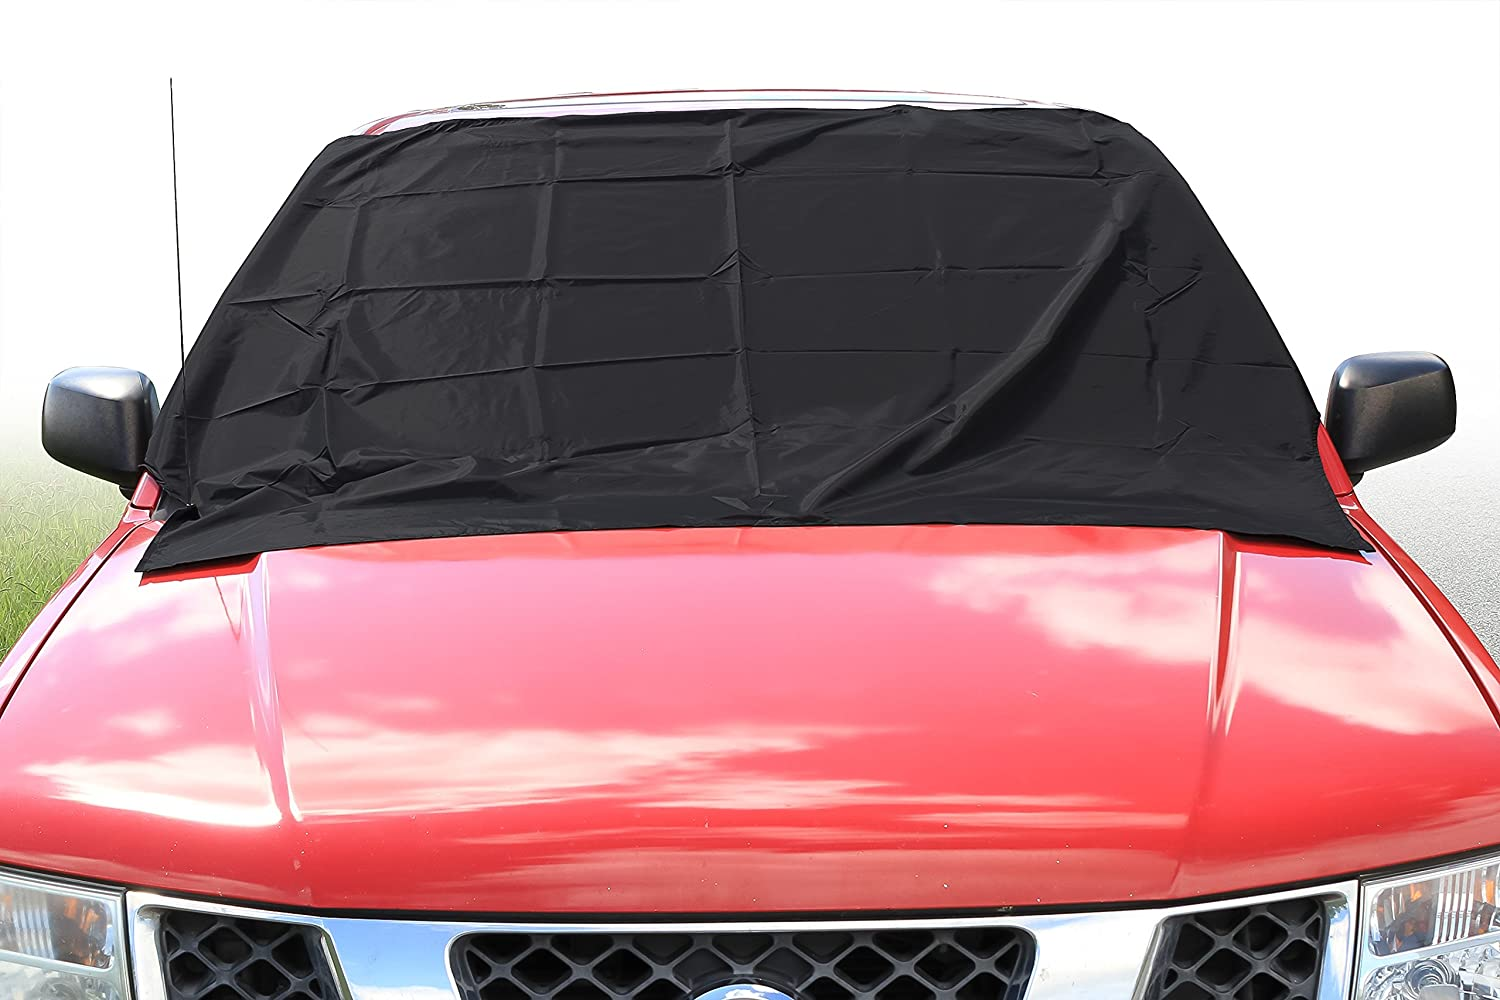 Great for Cars Camco Windshield Snow Cover RVs 45403 Trucks Dual Function with Integrated Silver Sun Shade